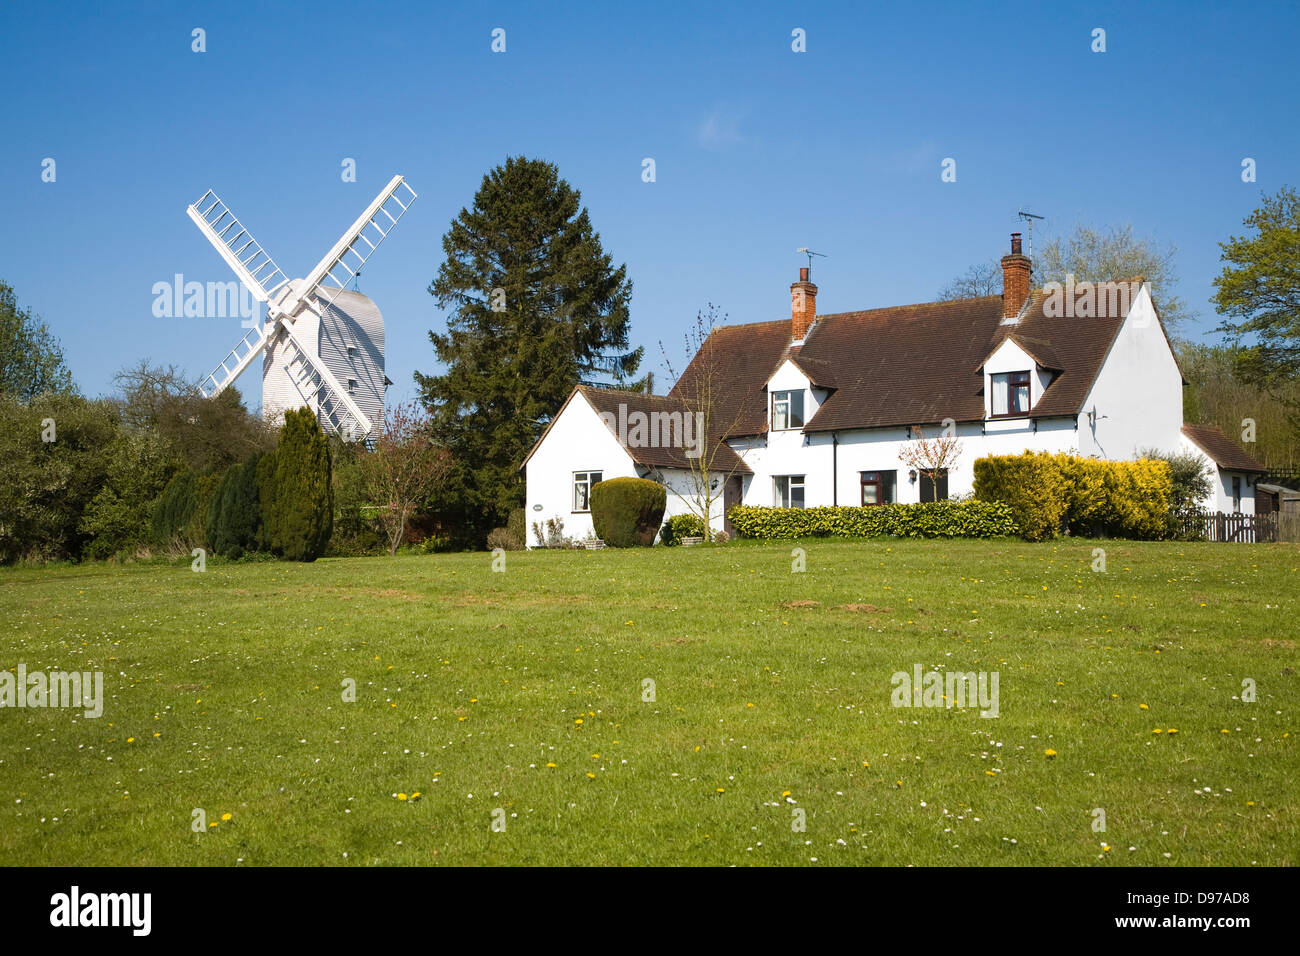 Housing and windmill in the attractive village of Finchingfield, Essex, England - Stock Image